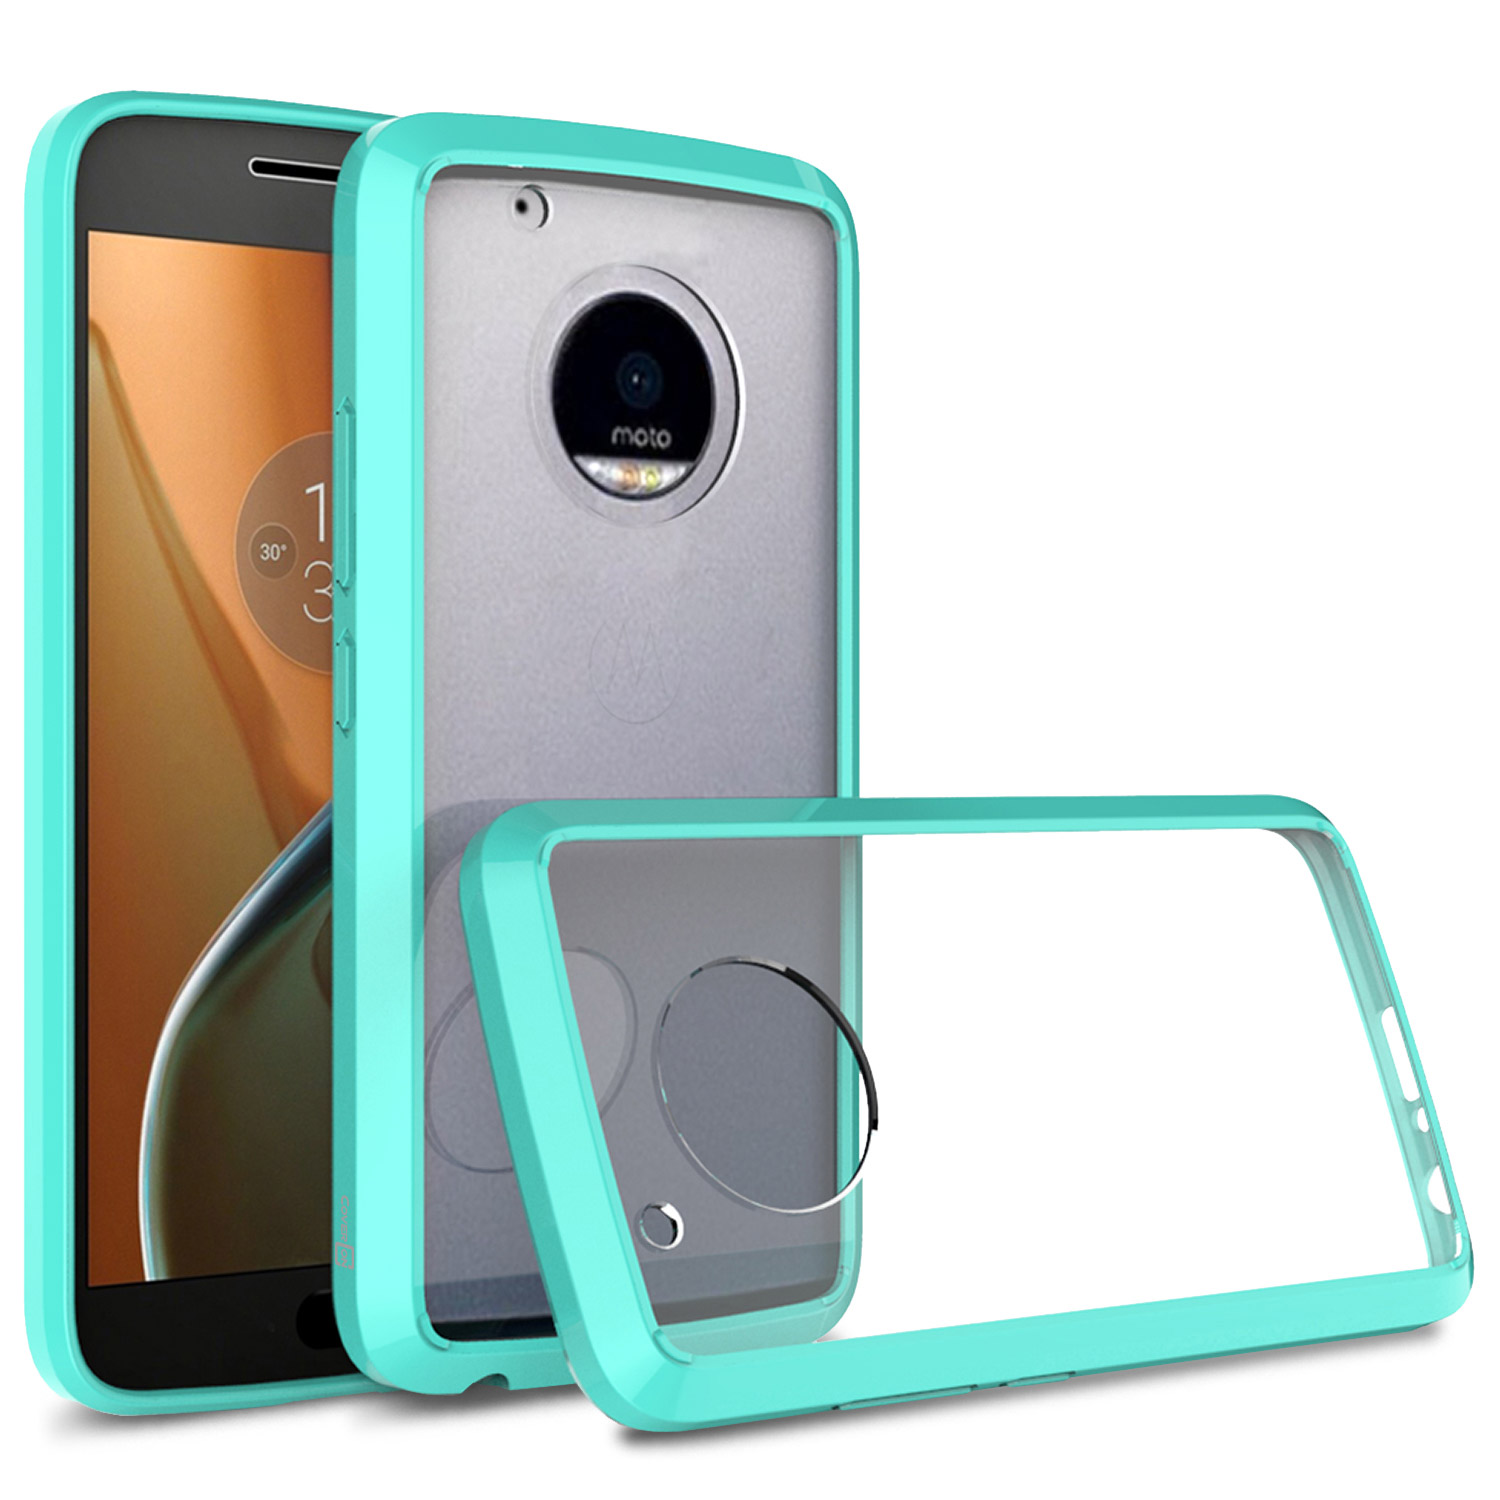 brand new 16e51 d032a Details about Slim Fit Back Cover Case For Motorola Moto G5 Plus / Moto X  2017 Teal / Clear